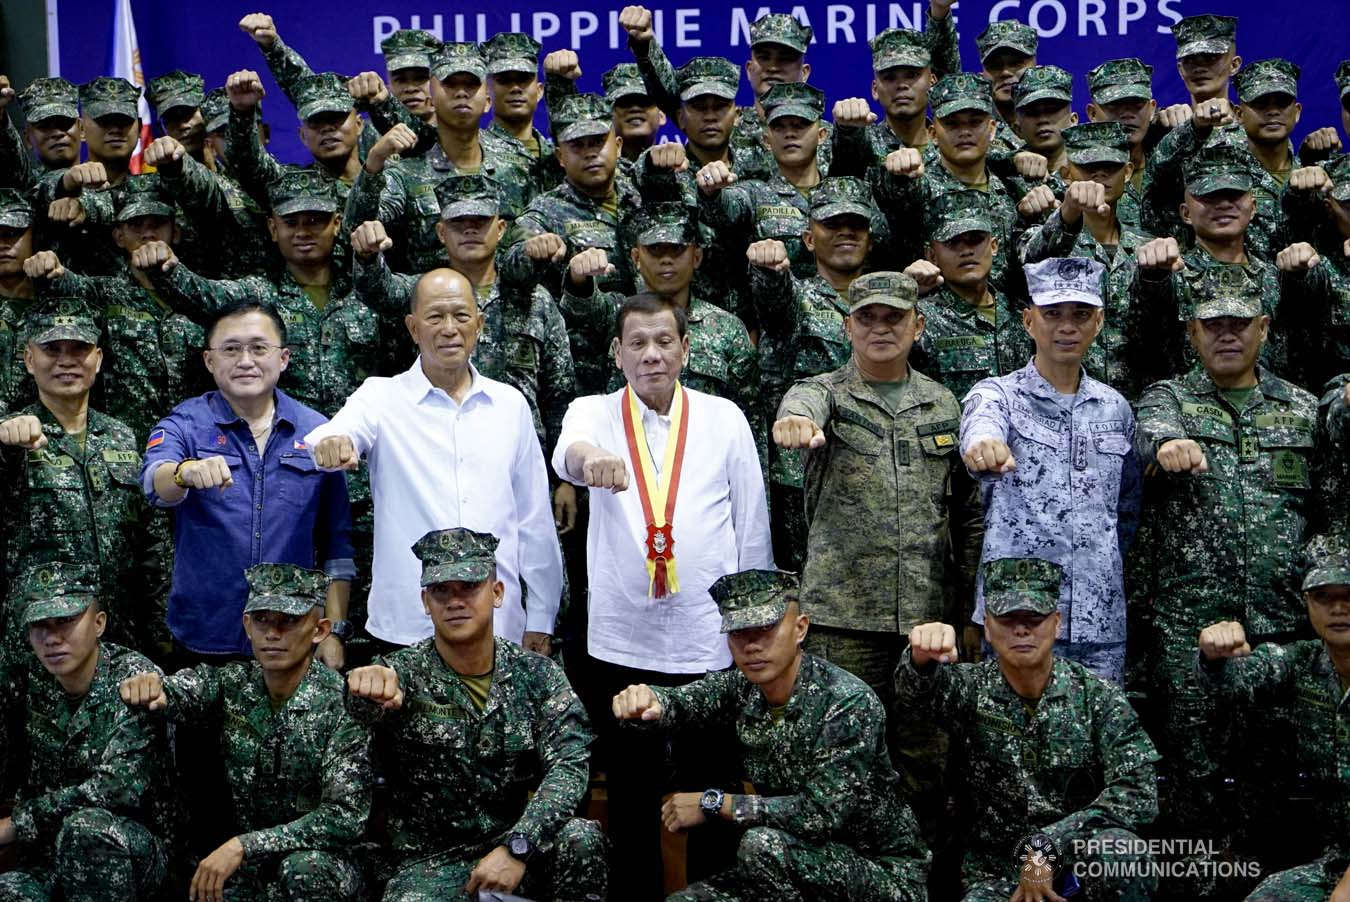 """President Rodrigo Roa Duterte strikes his signature pose with Senator Christopher """"Bong"""" Go, Defense Secretary Delfin Lorenzana and the officers and personnel of the Philippine Marine Corps during his visit at Fort Bonifacio in Taguig City on January 13, 2020. KING RODRIGUEZ/PRESIDENTIAL PHOTO"""